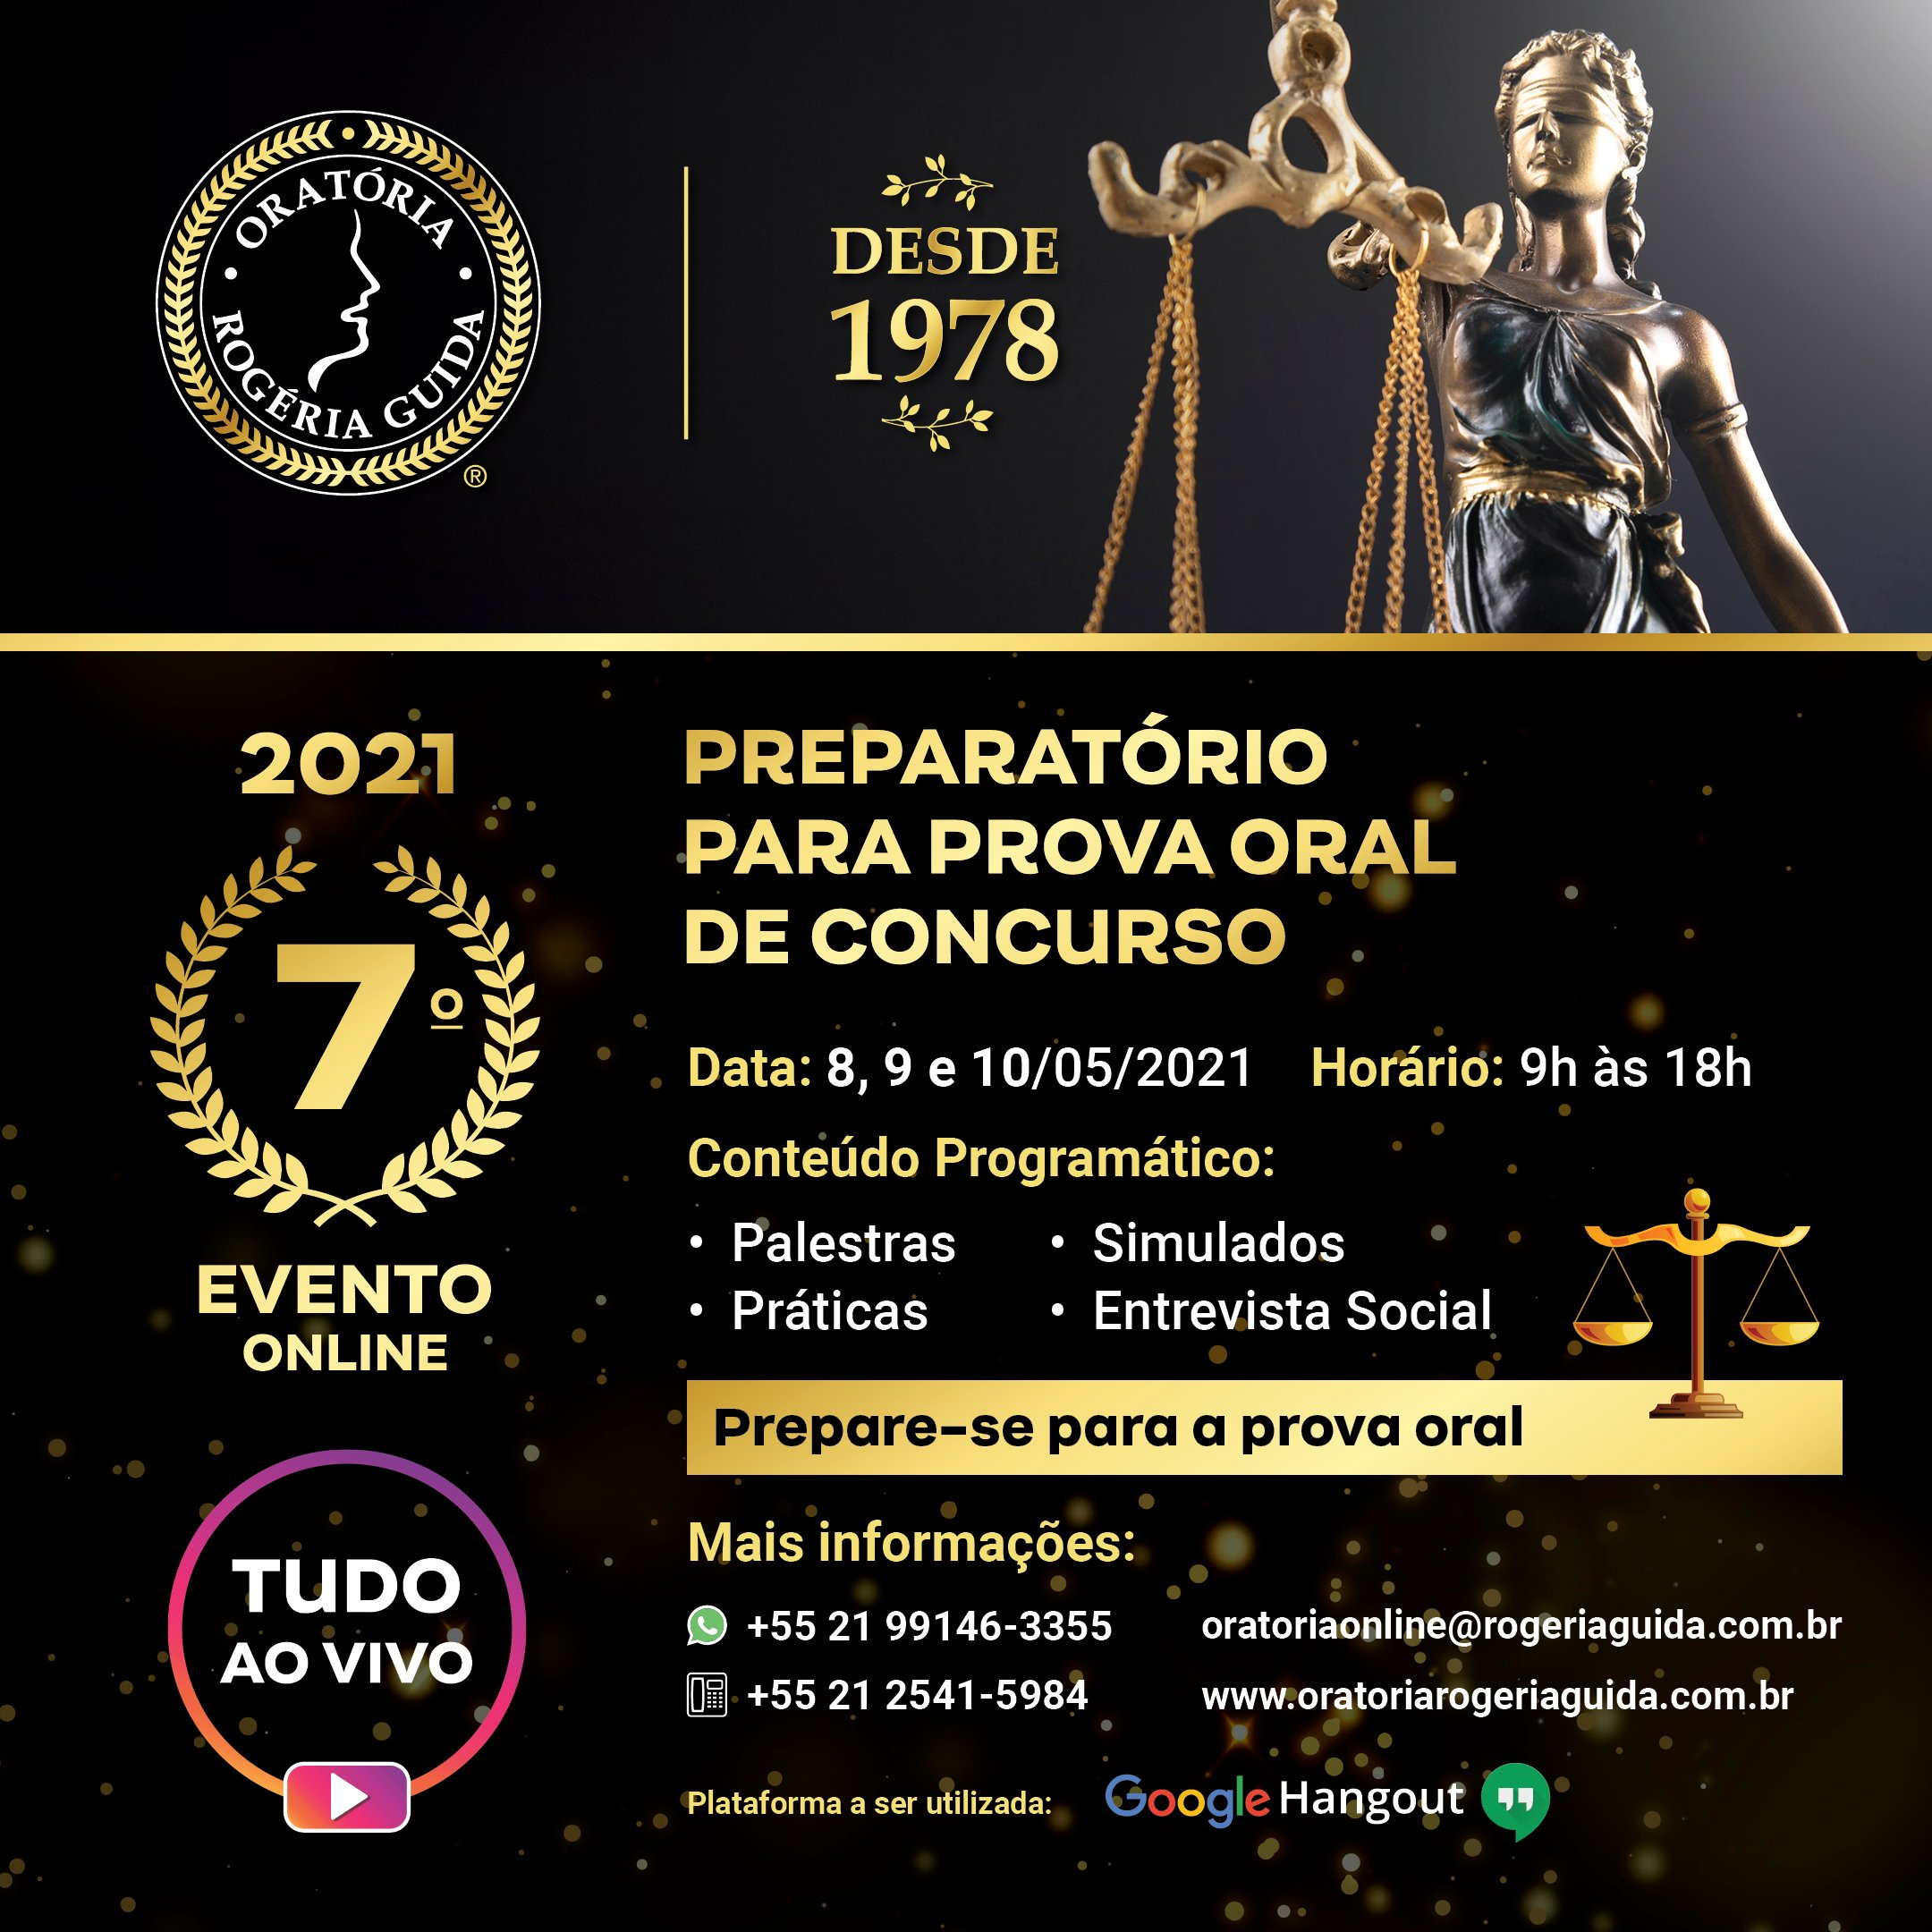 Evento 7_Preparatorio para Concurso_Oratoria_1080x1080px